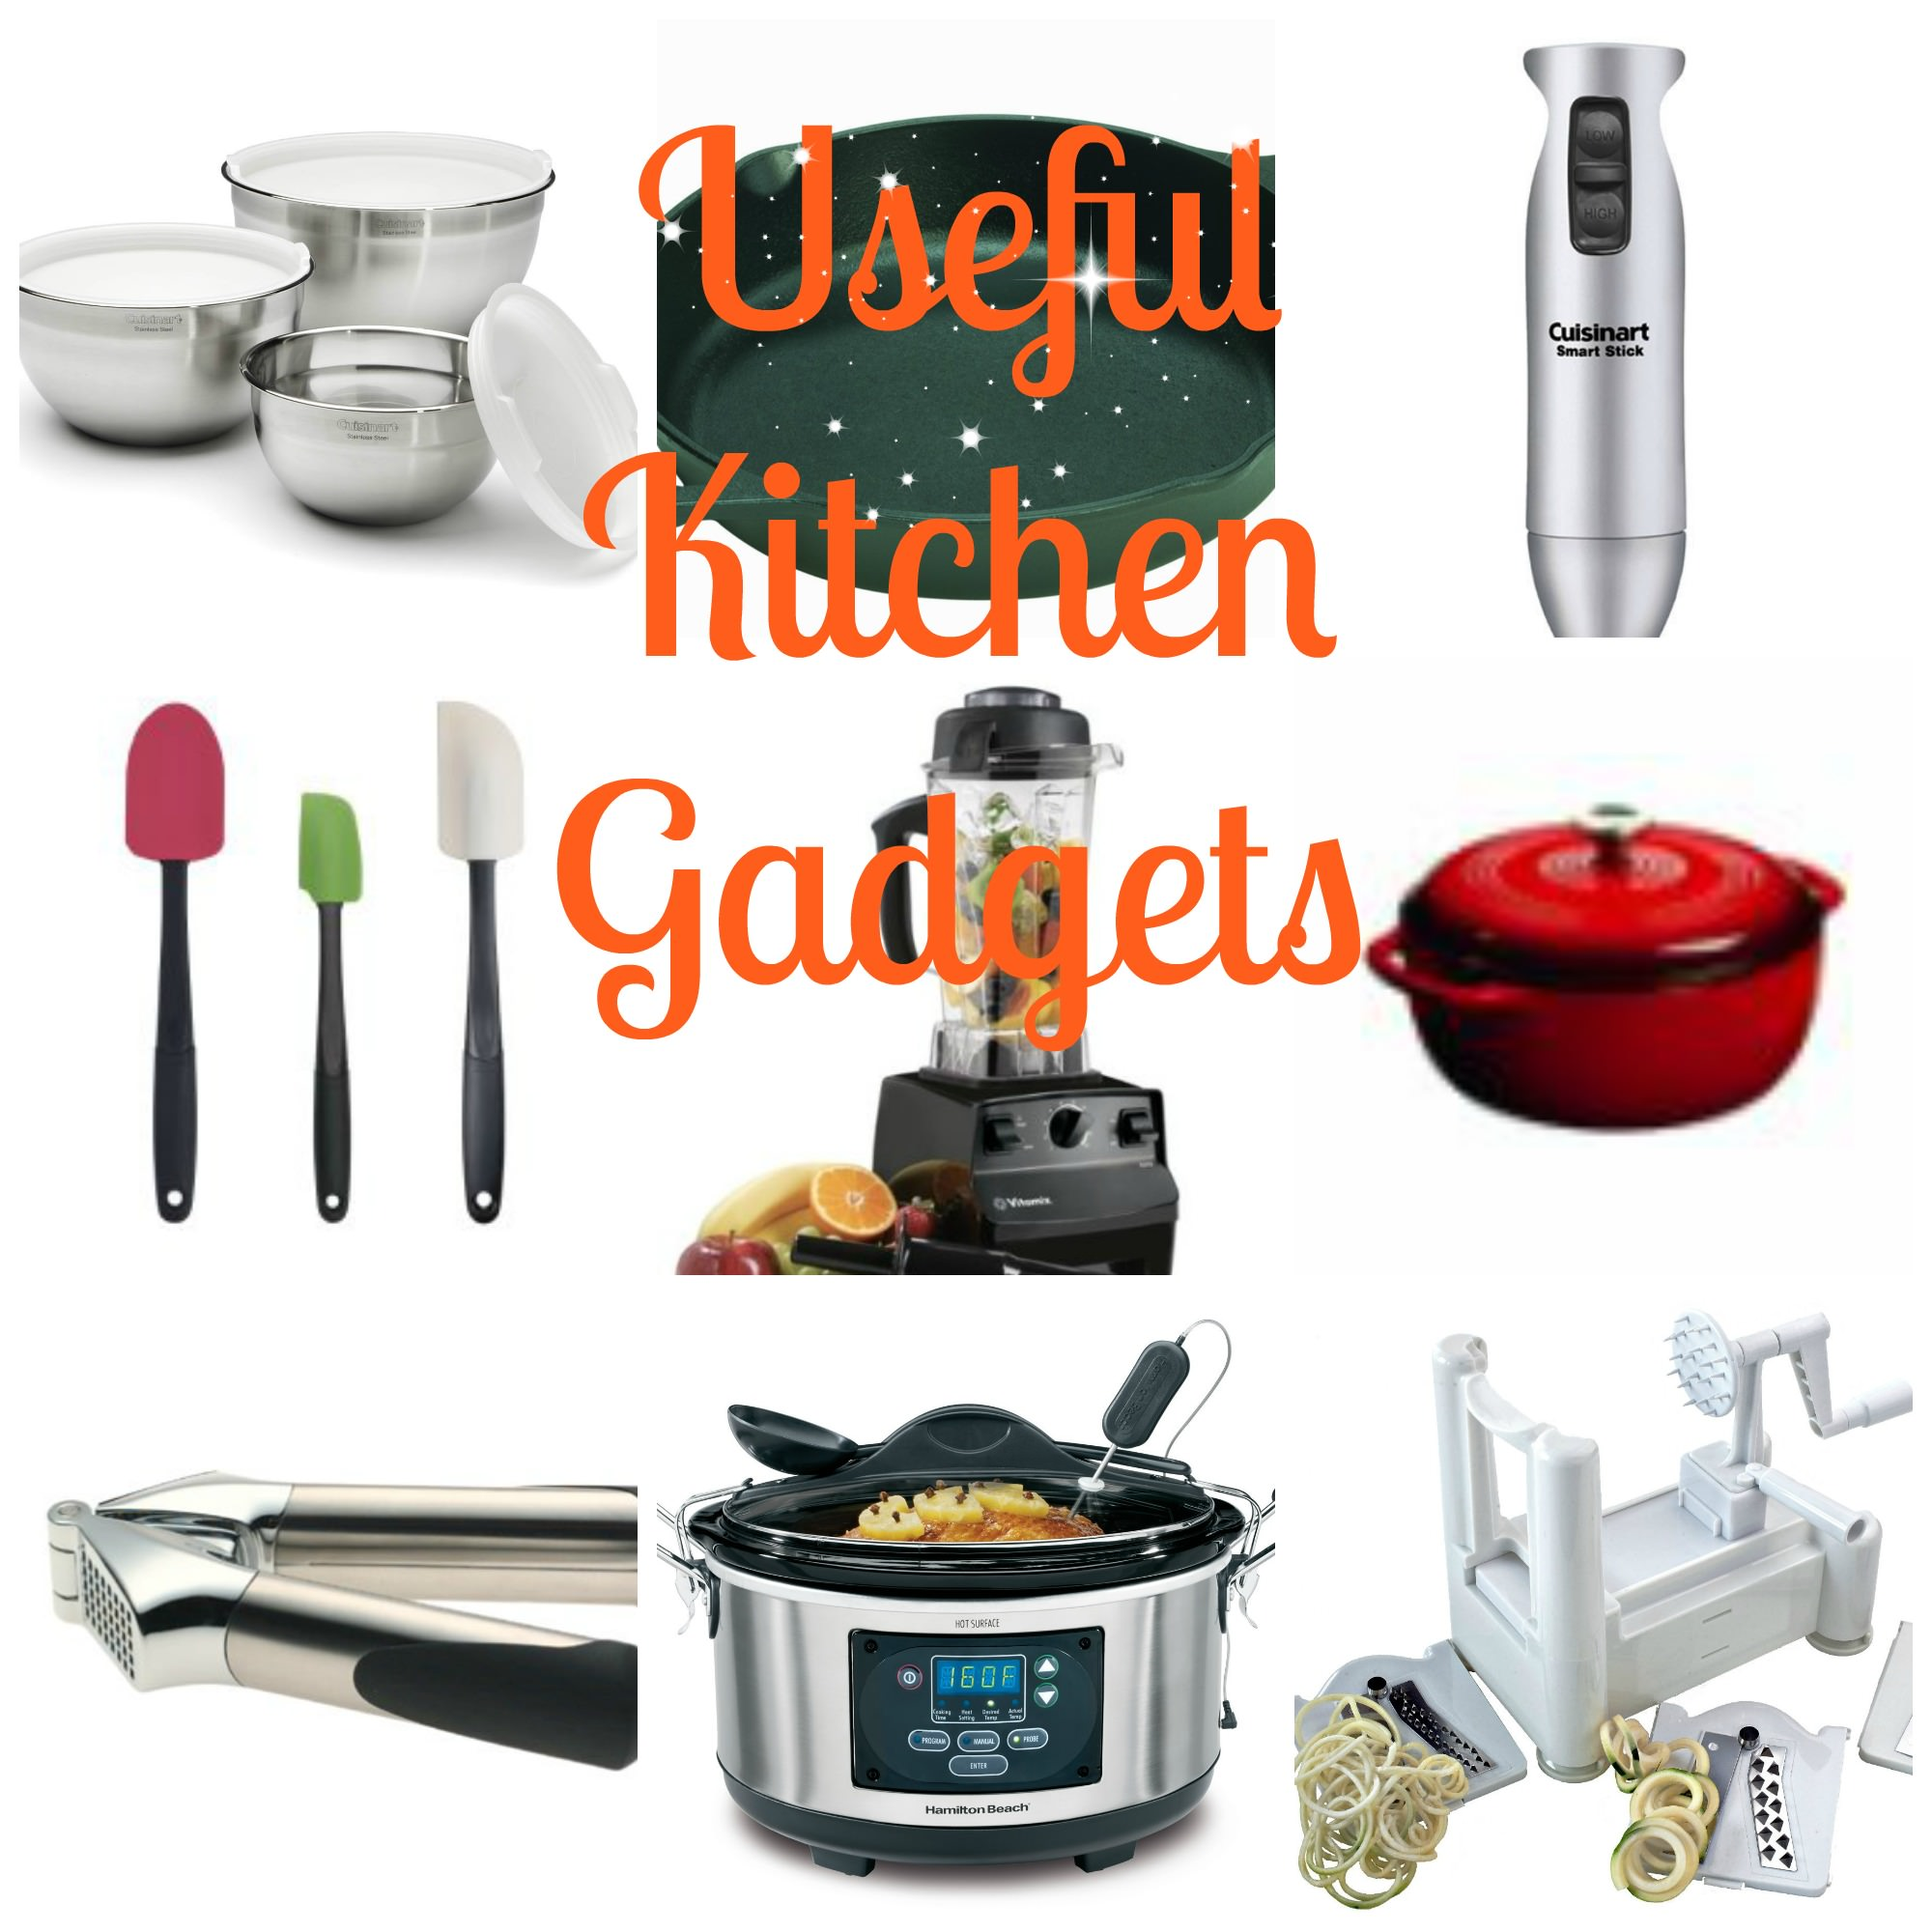 Part 4: Useful Kitchen Gadgets